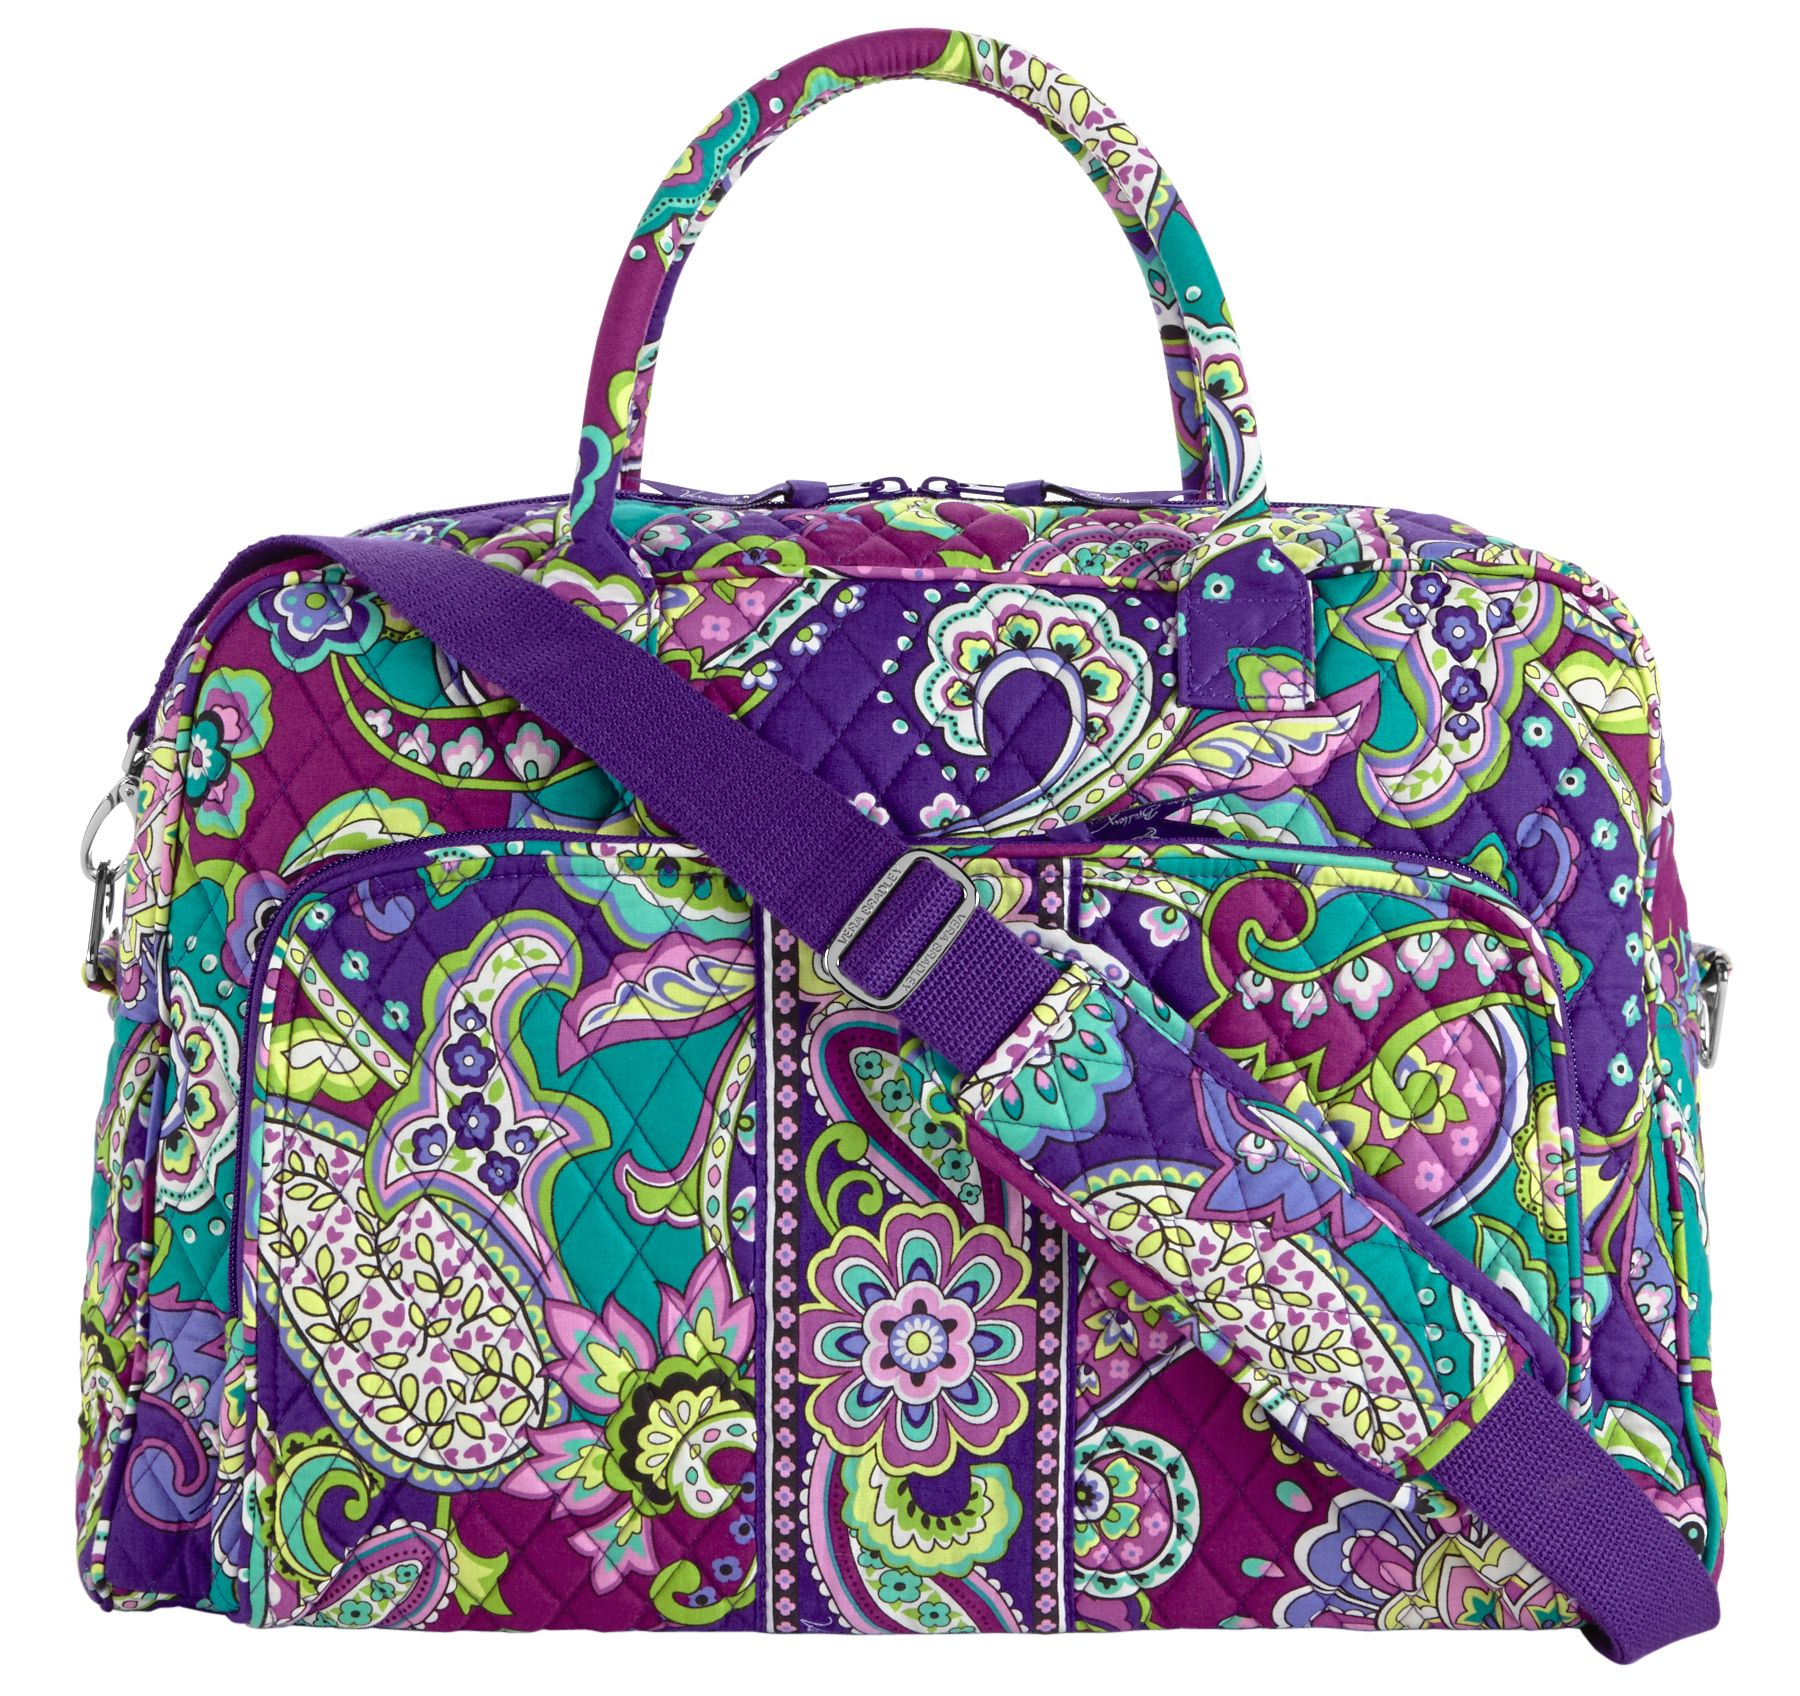 13 verified Vera Bradley coupons and promo codes as of Dec 7. Popular now: Up to 50% Off Vera Bradley Sale. Trust nmuiakbosczpl.ga for Bags savings.